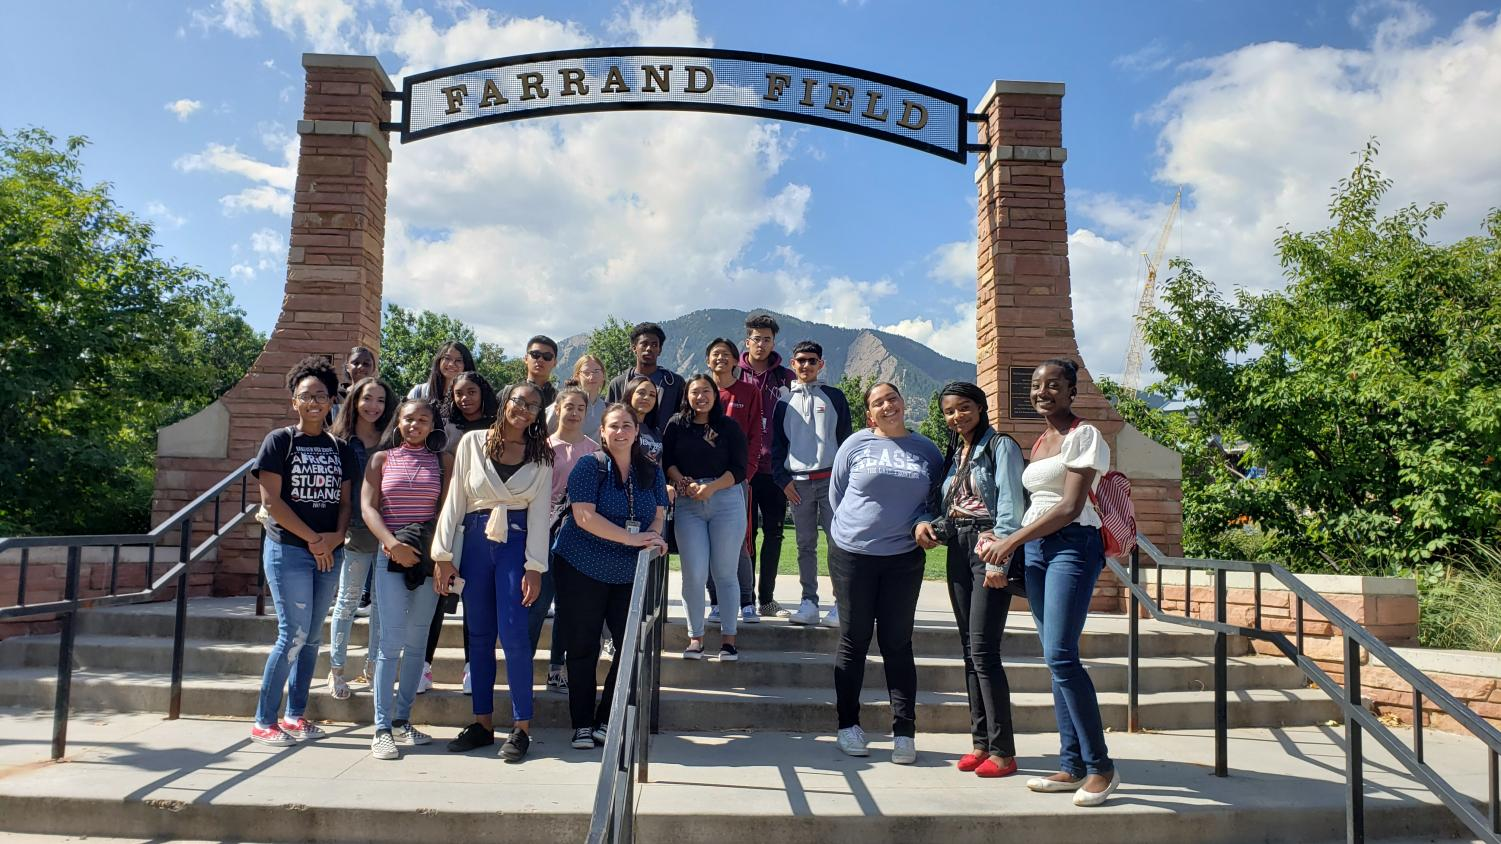 Feature photo by Shauna Meyer: A group photo of a handful of students at Farrand Field during the CU Boulder college visit.